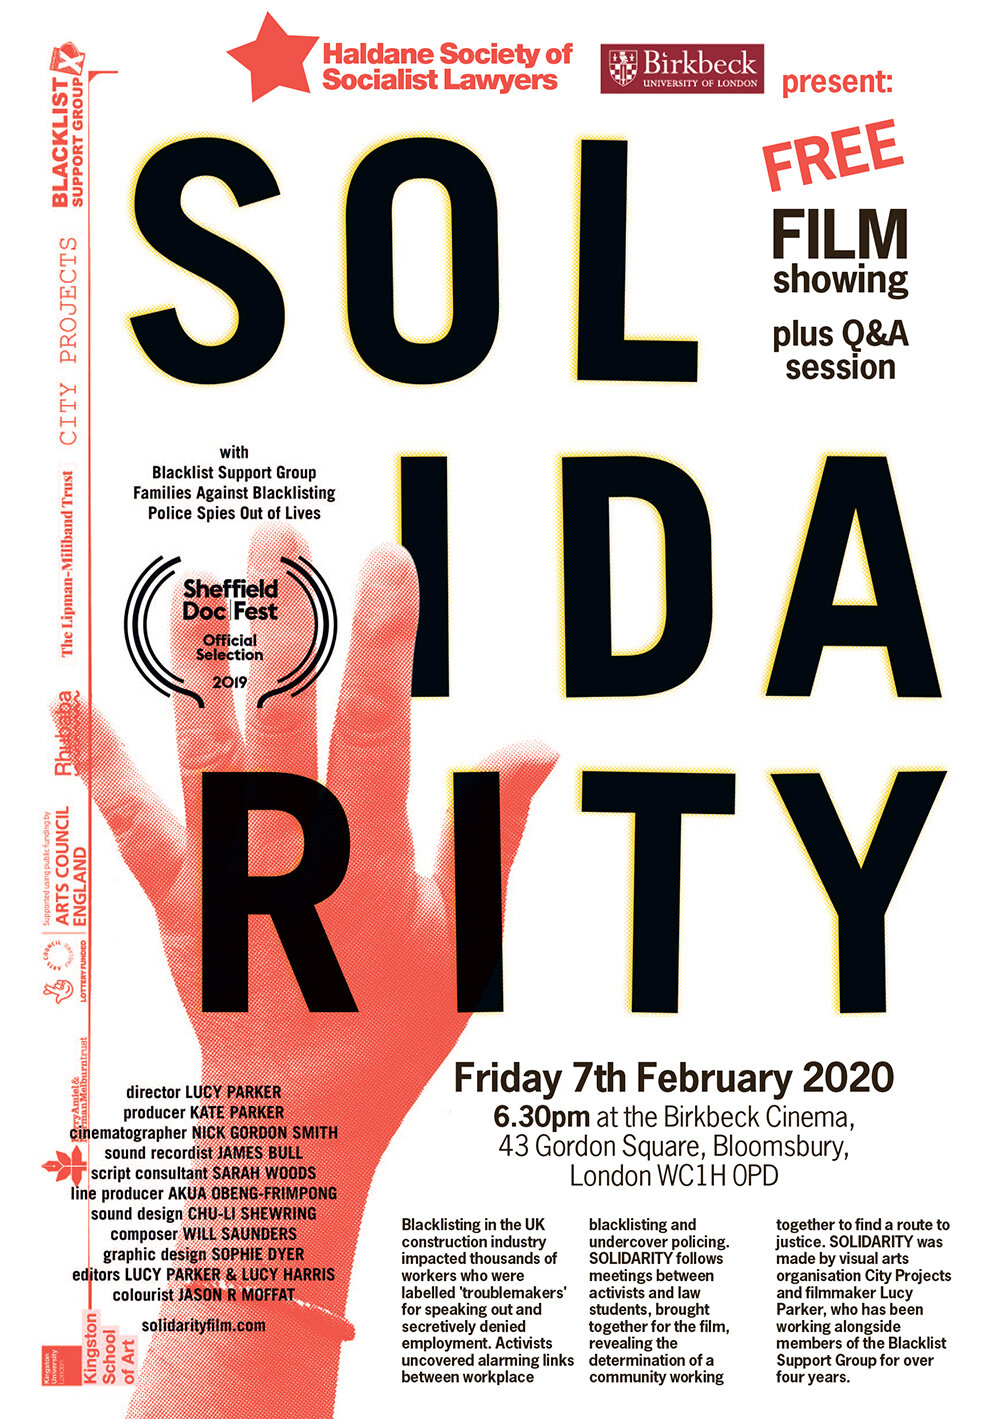 haldane-birkbeck-film-7Feb2020-web.jpg